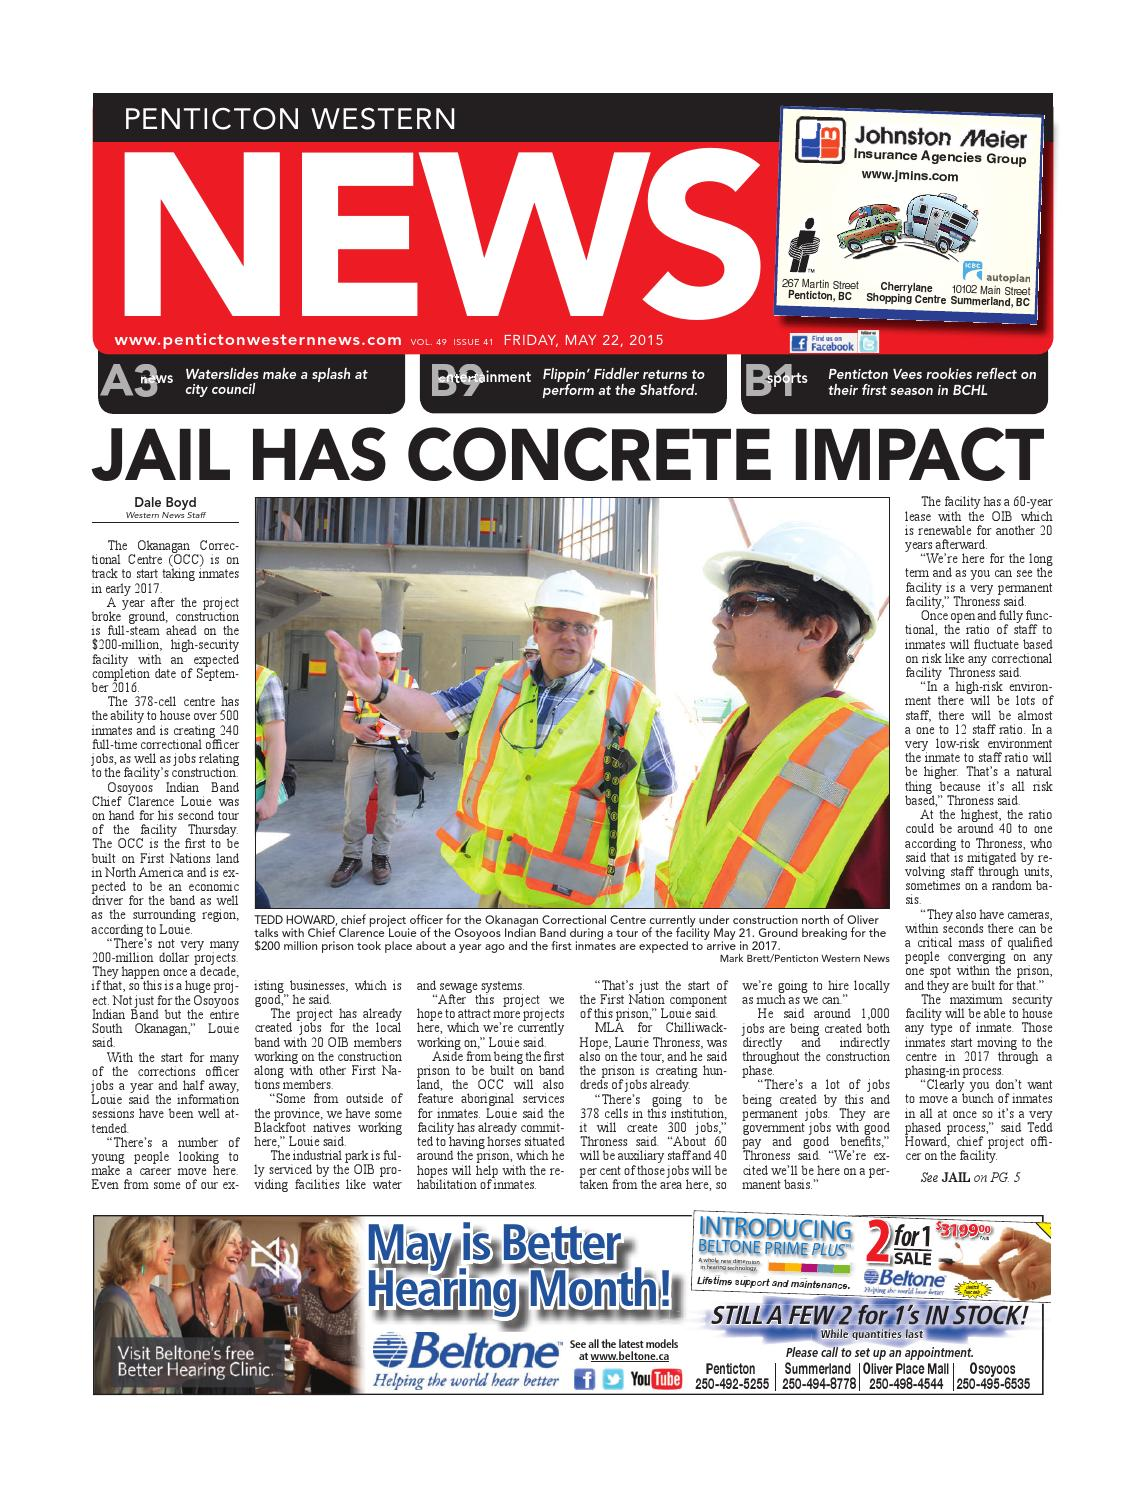 Penticton Western News May 22 2015 By Black Press